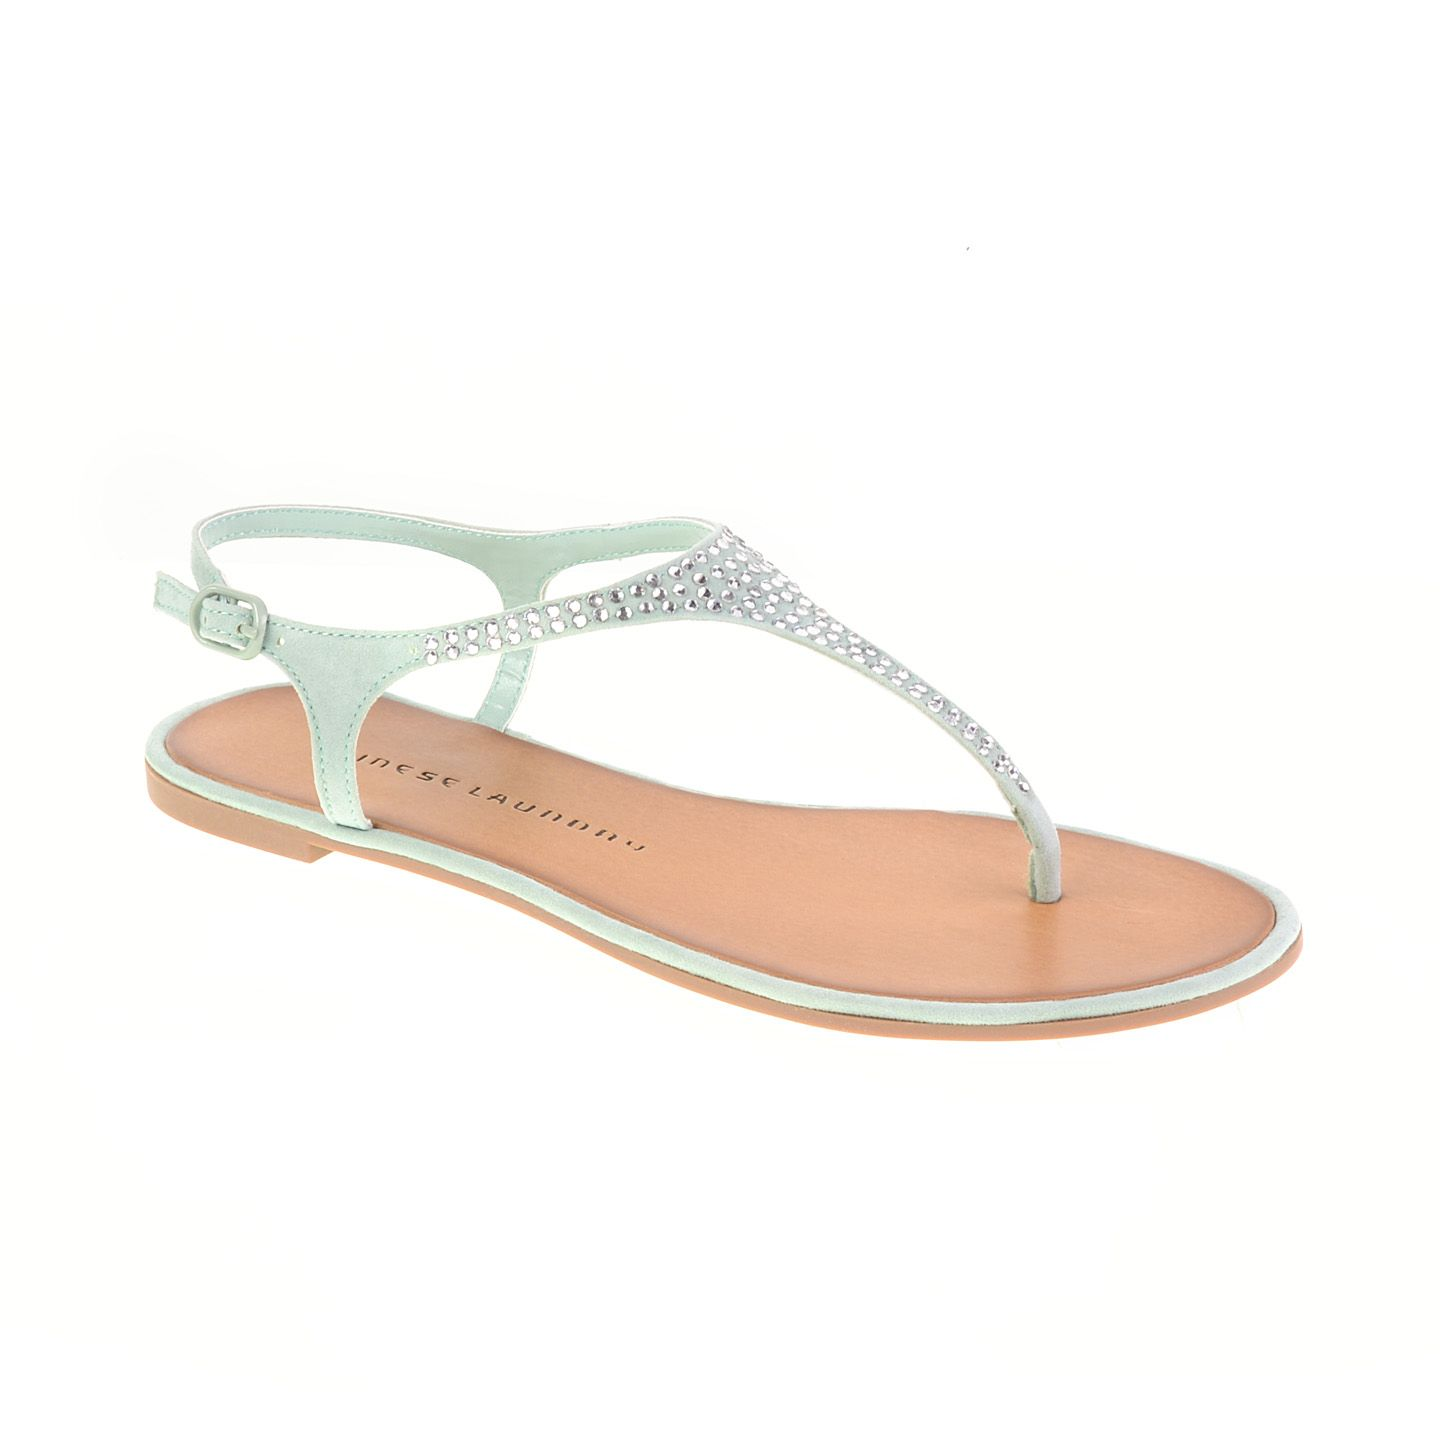 Shoes For Wedding Chinese Laundry Mint Sandals Chinese Laundry